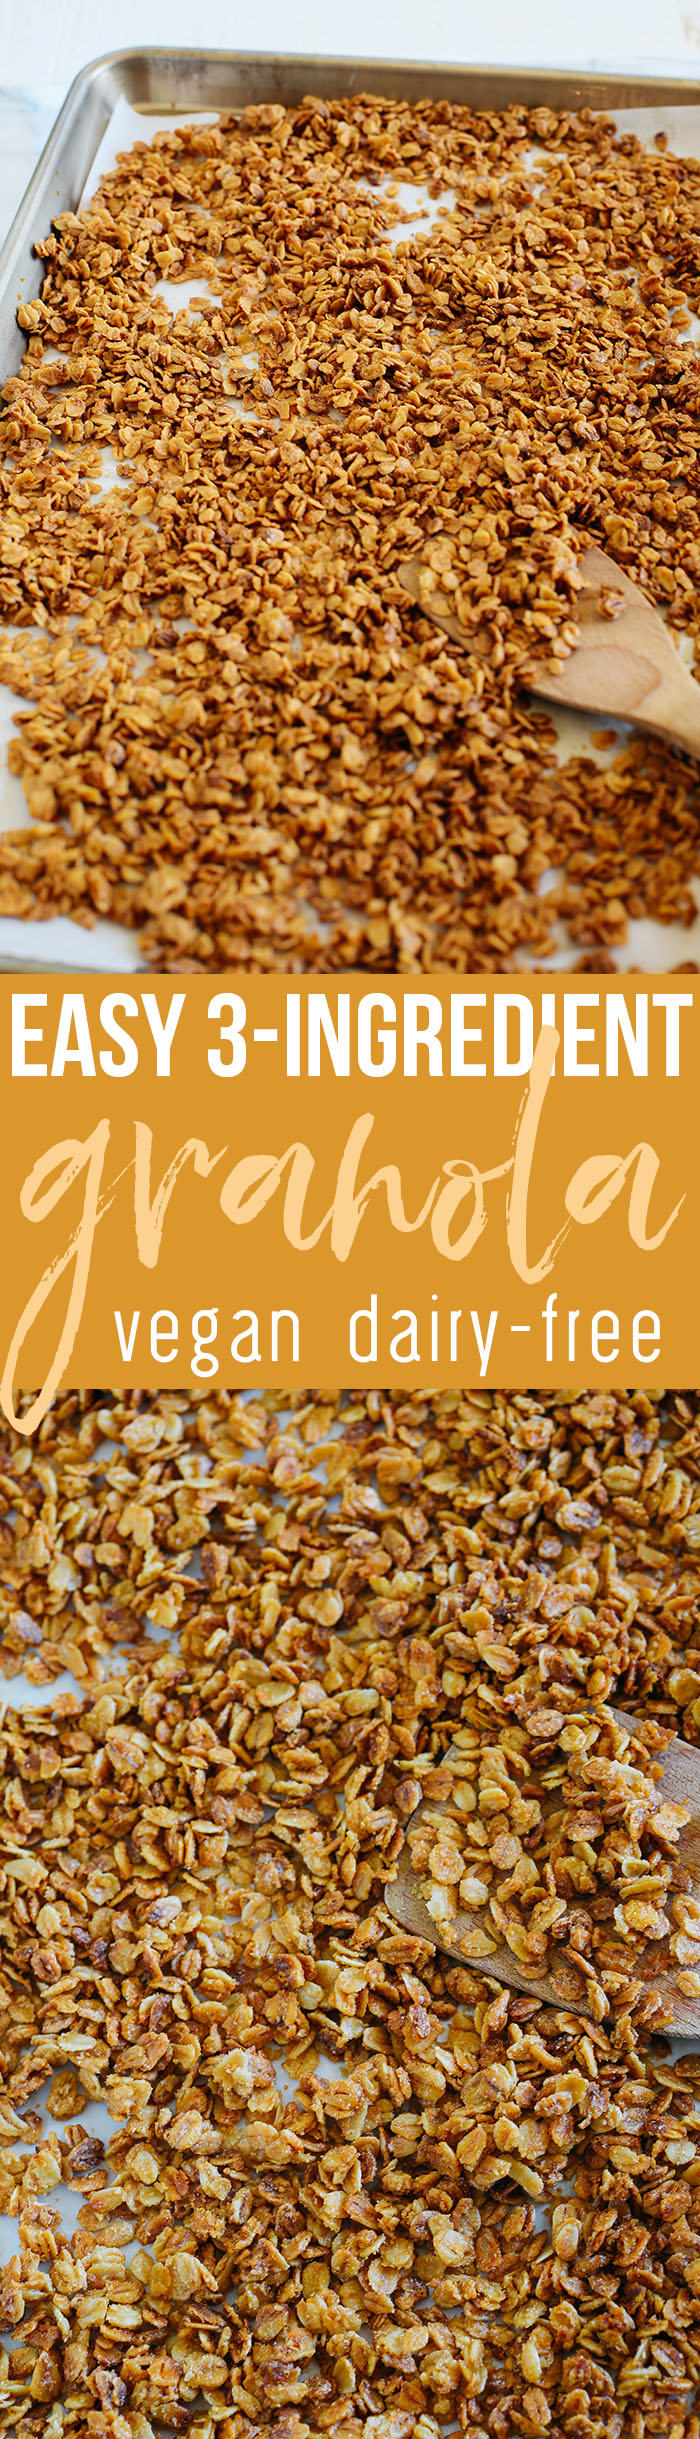 My favorite go-to granola recipe that is EASY to make and only requires three simple ingredients!  The perfect basic recipe that you can make all your own!